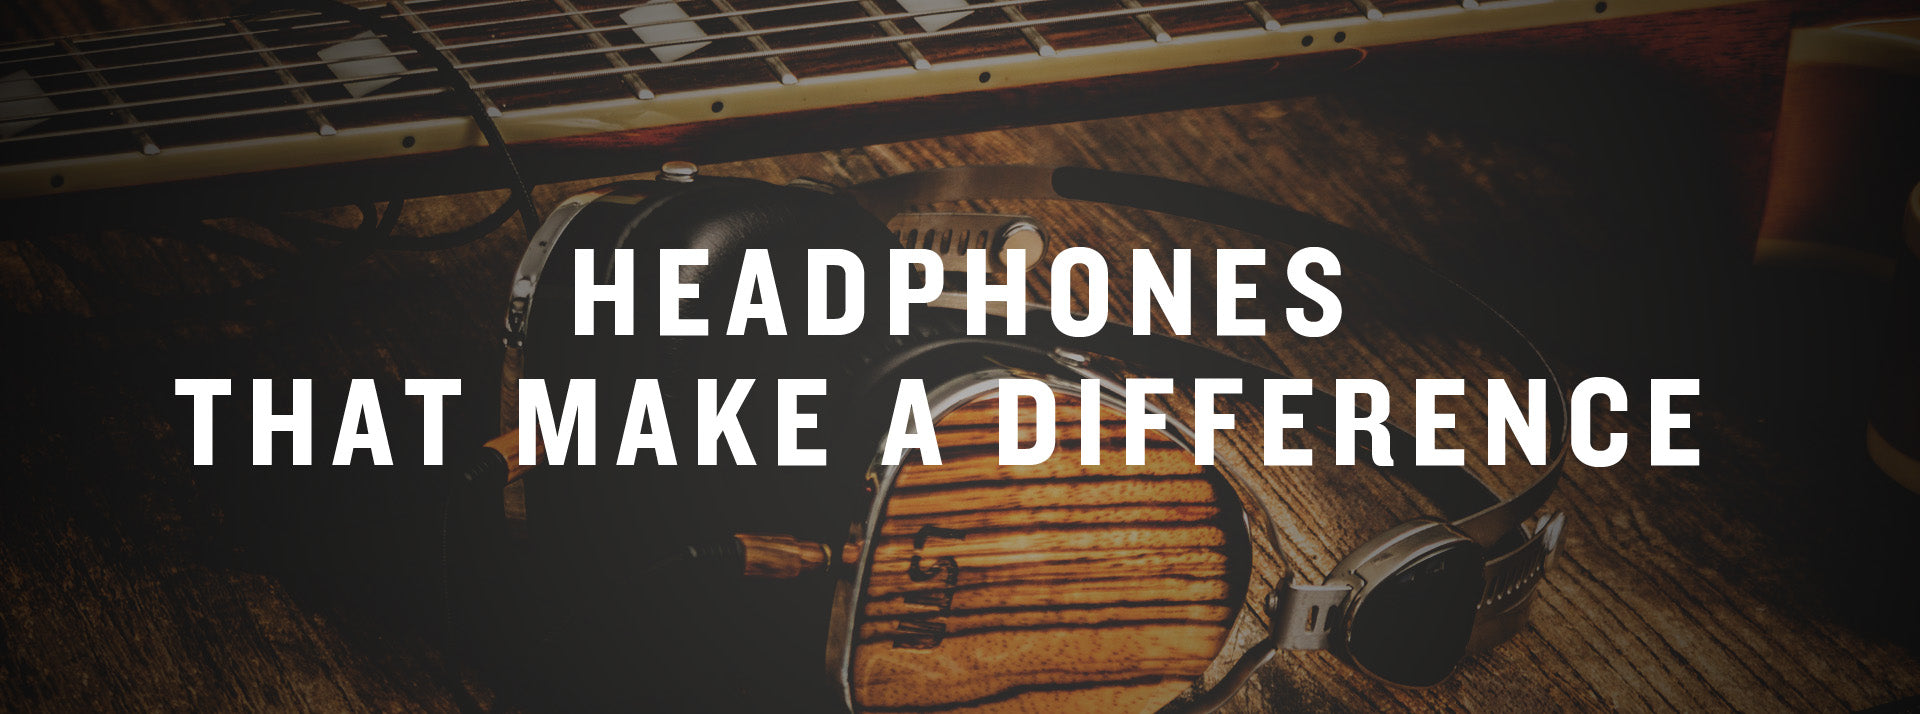 headphones that make a difference